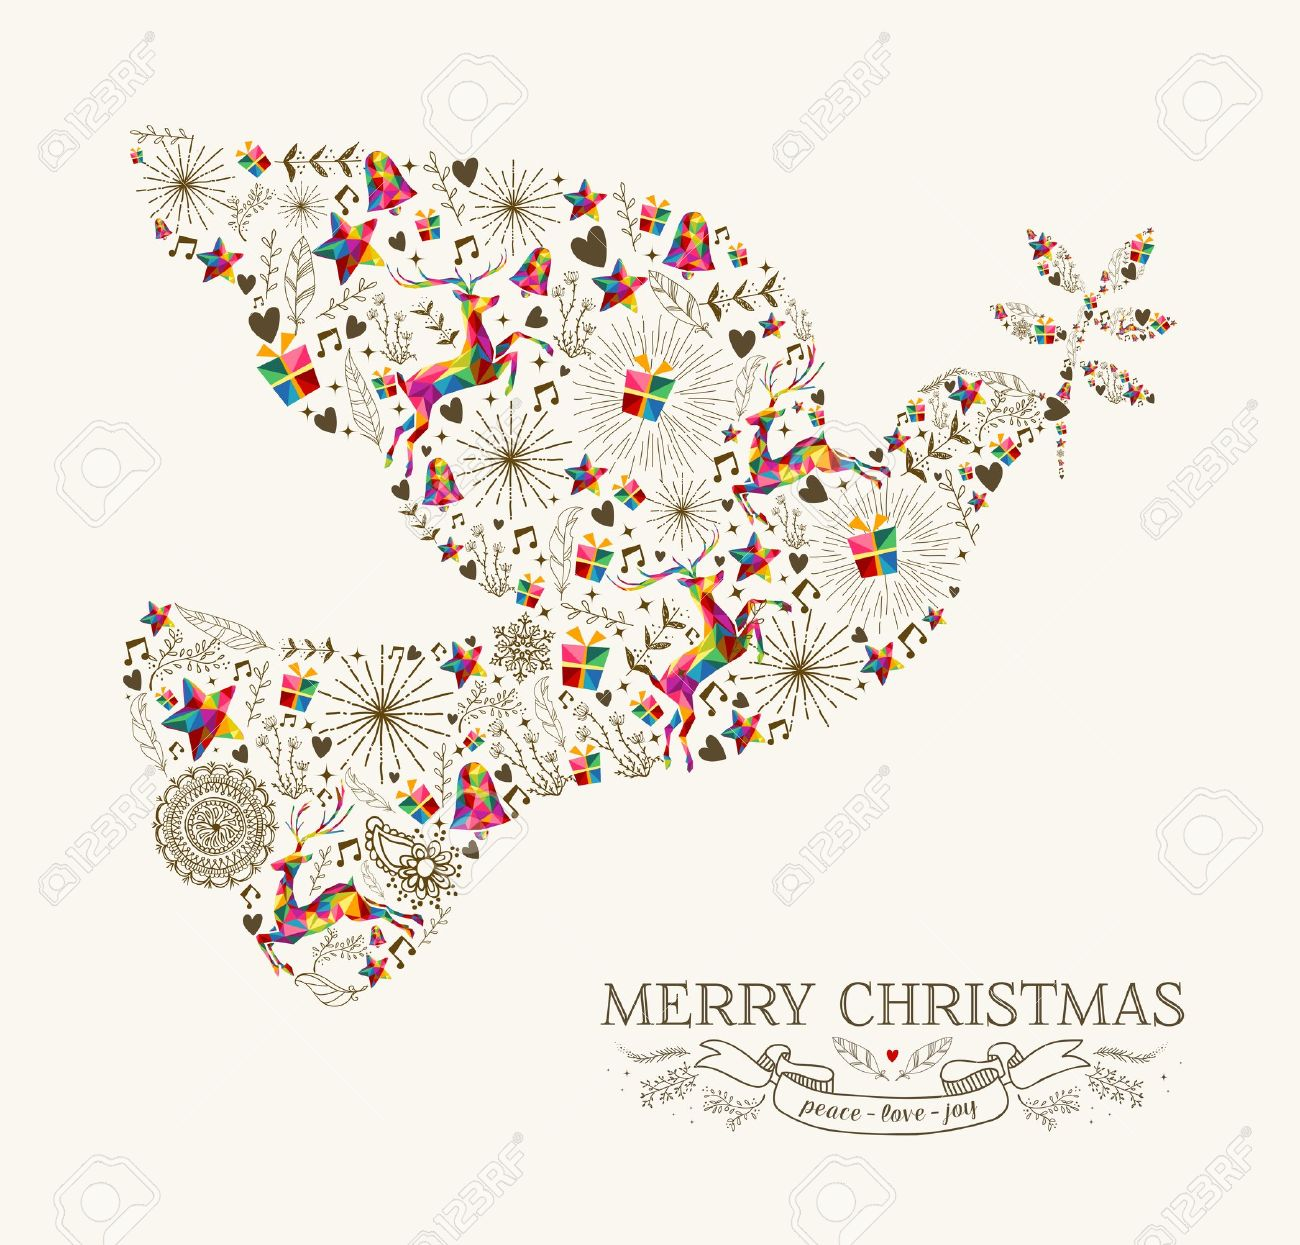 6,813 Christmas Peace Stock Vector Illustration And Royalty Free.